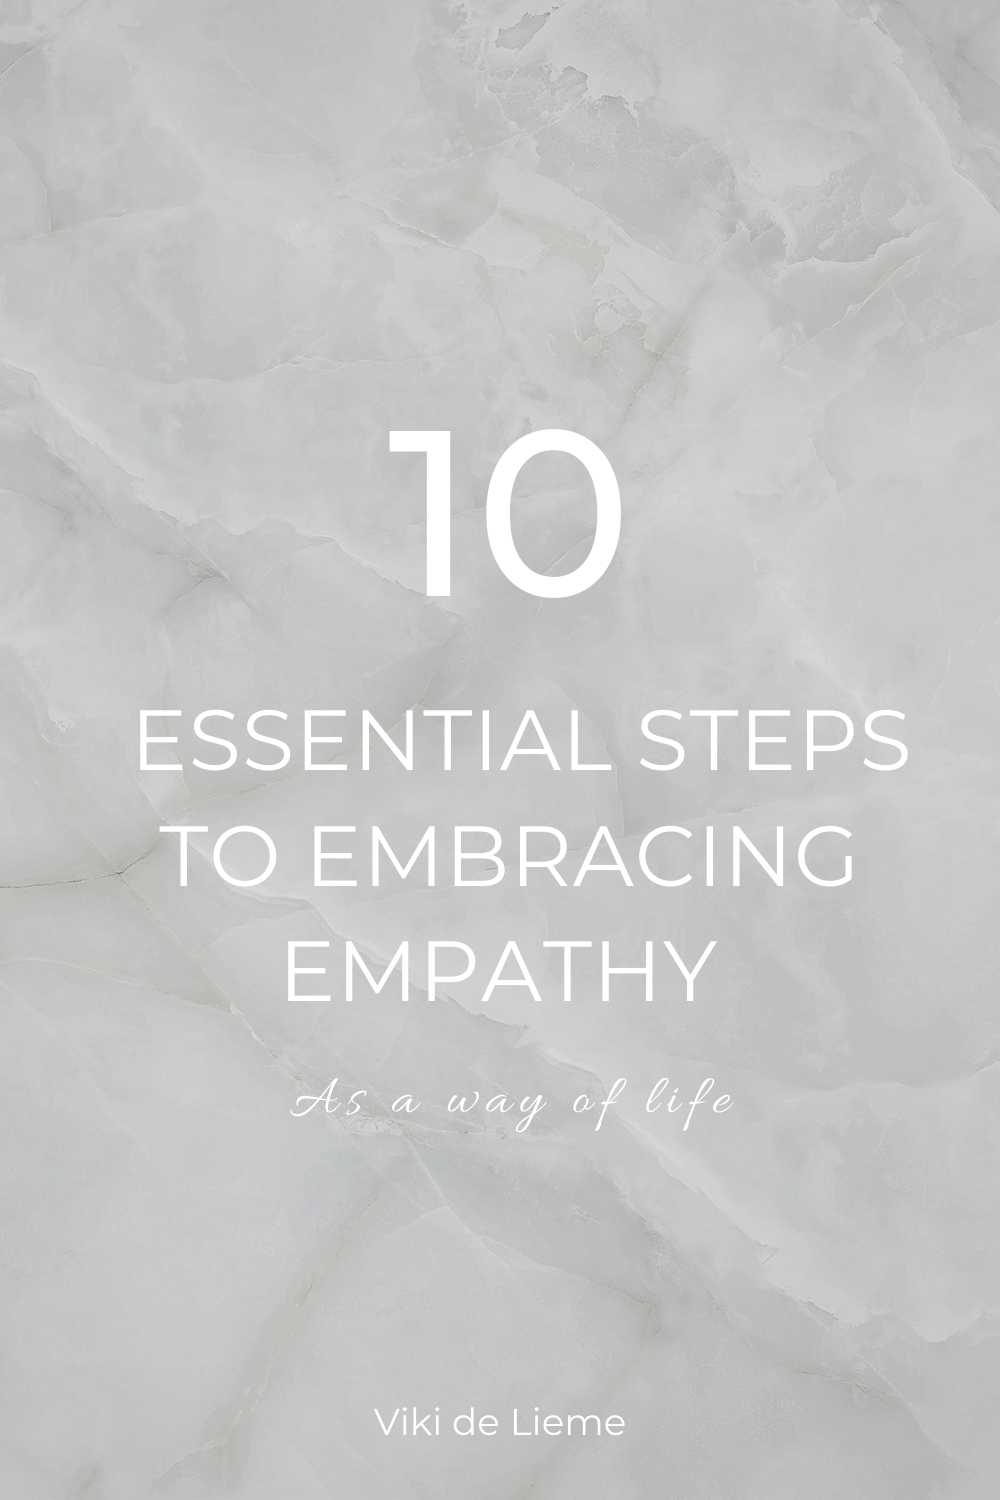 If you want to connect to your child, to teach them how to cope with life, to foster a feeling of acceptance and unconditional love, empathy is your tool. But it is so hard, isn't it..? In this article I break down the steps that allow you to put judgment aside and live a life of true connection #unconditionalparenting #empathy #parenting #attachmentparenting #peacefulparenting #unconditionallove #respectfulparenting #nvc #parentinghelp #children'sbigfeelings #emotioncoaching